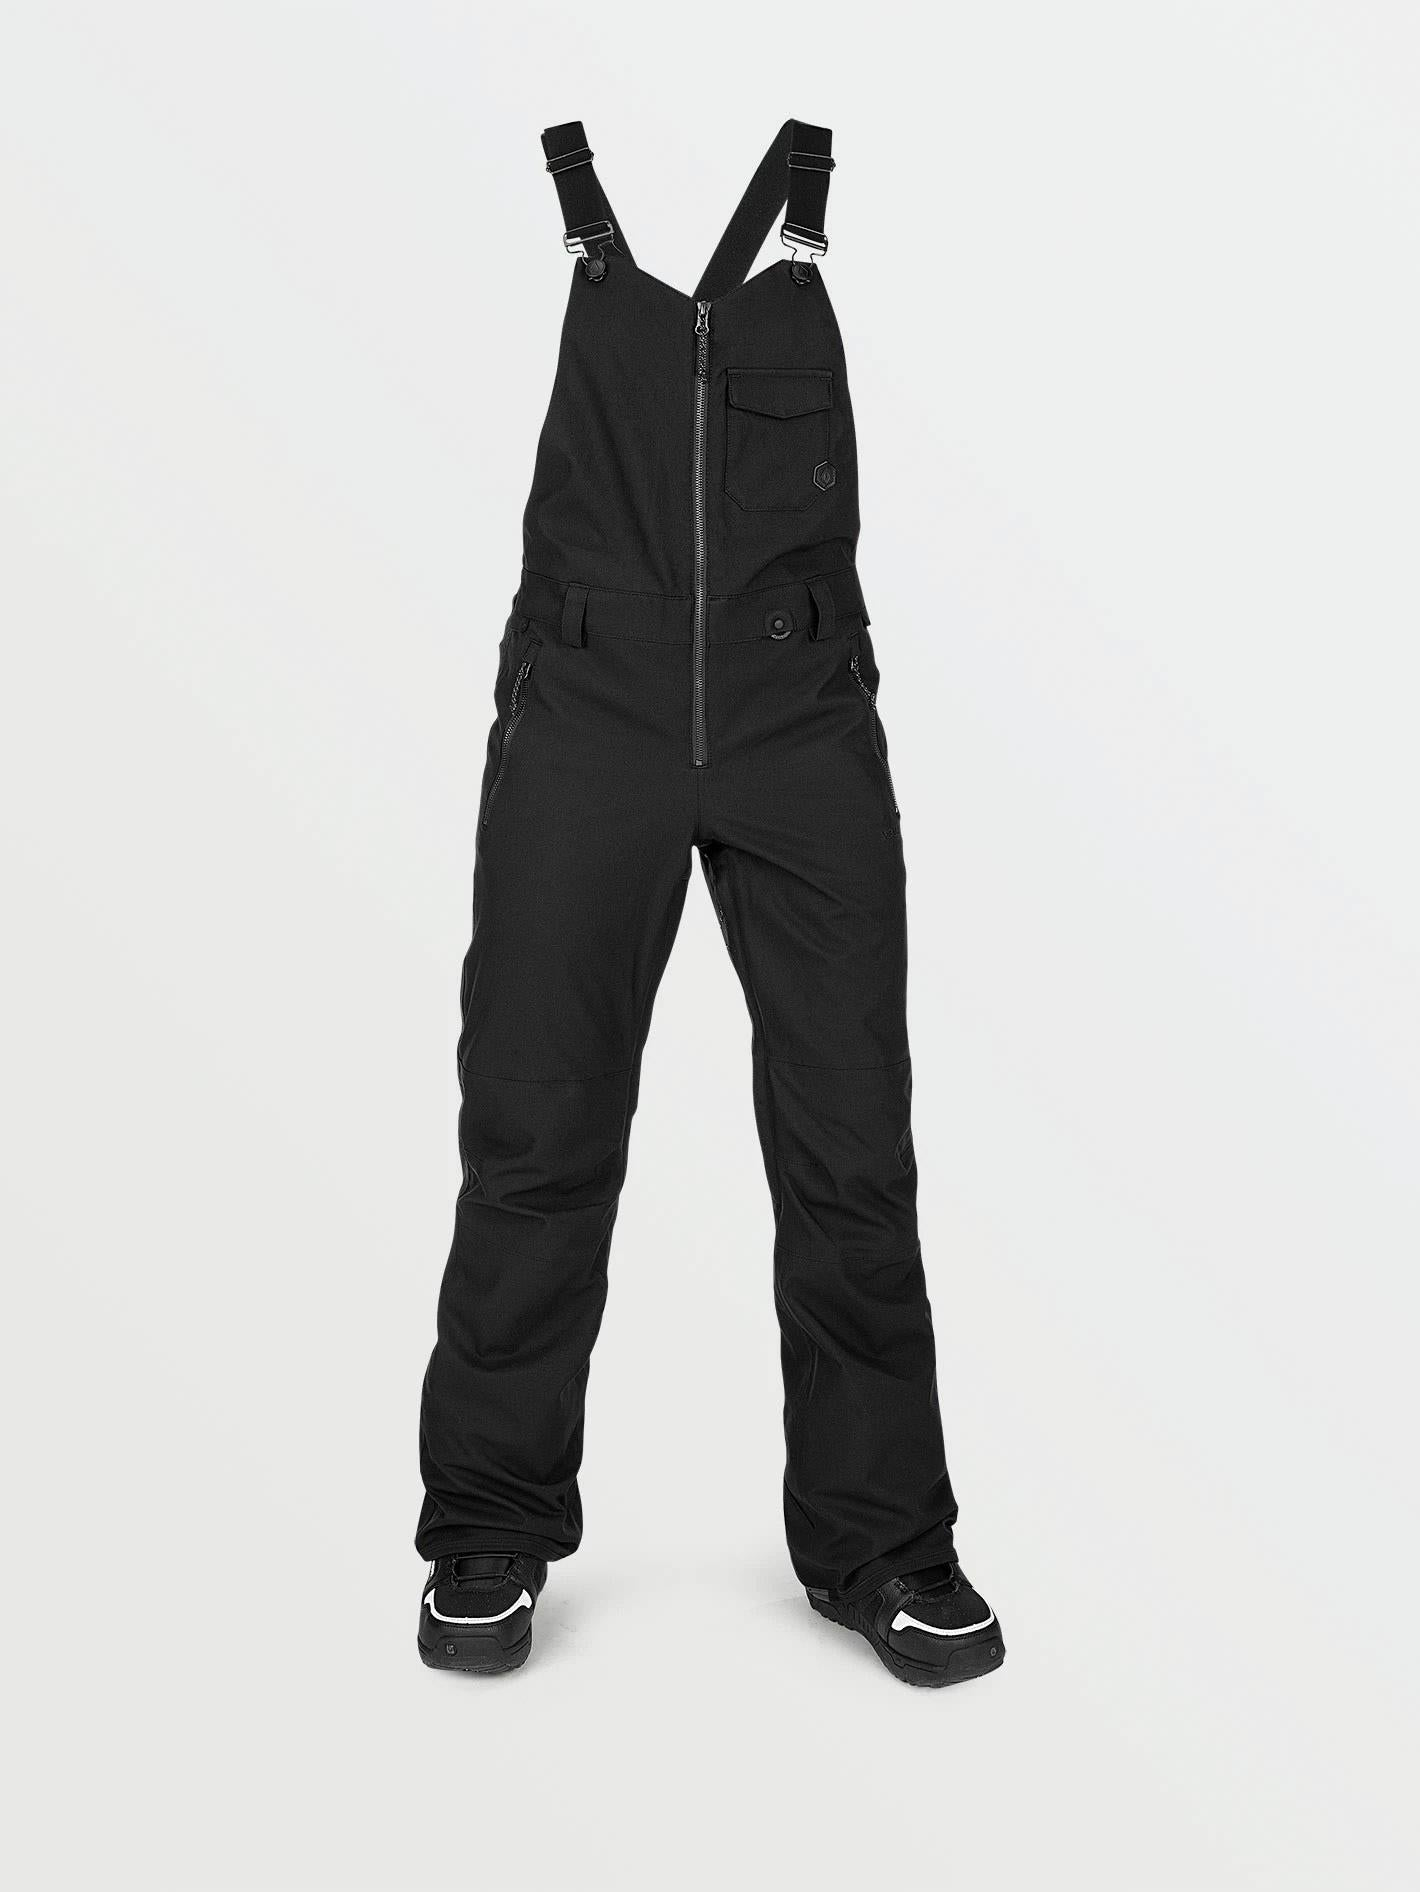 H1352103,Volcom, Womens Snowpants,Black